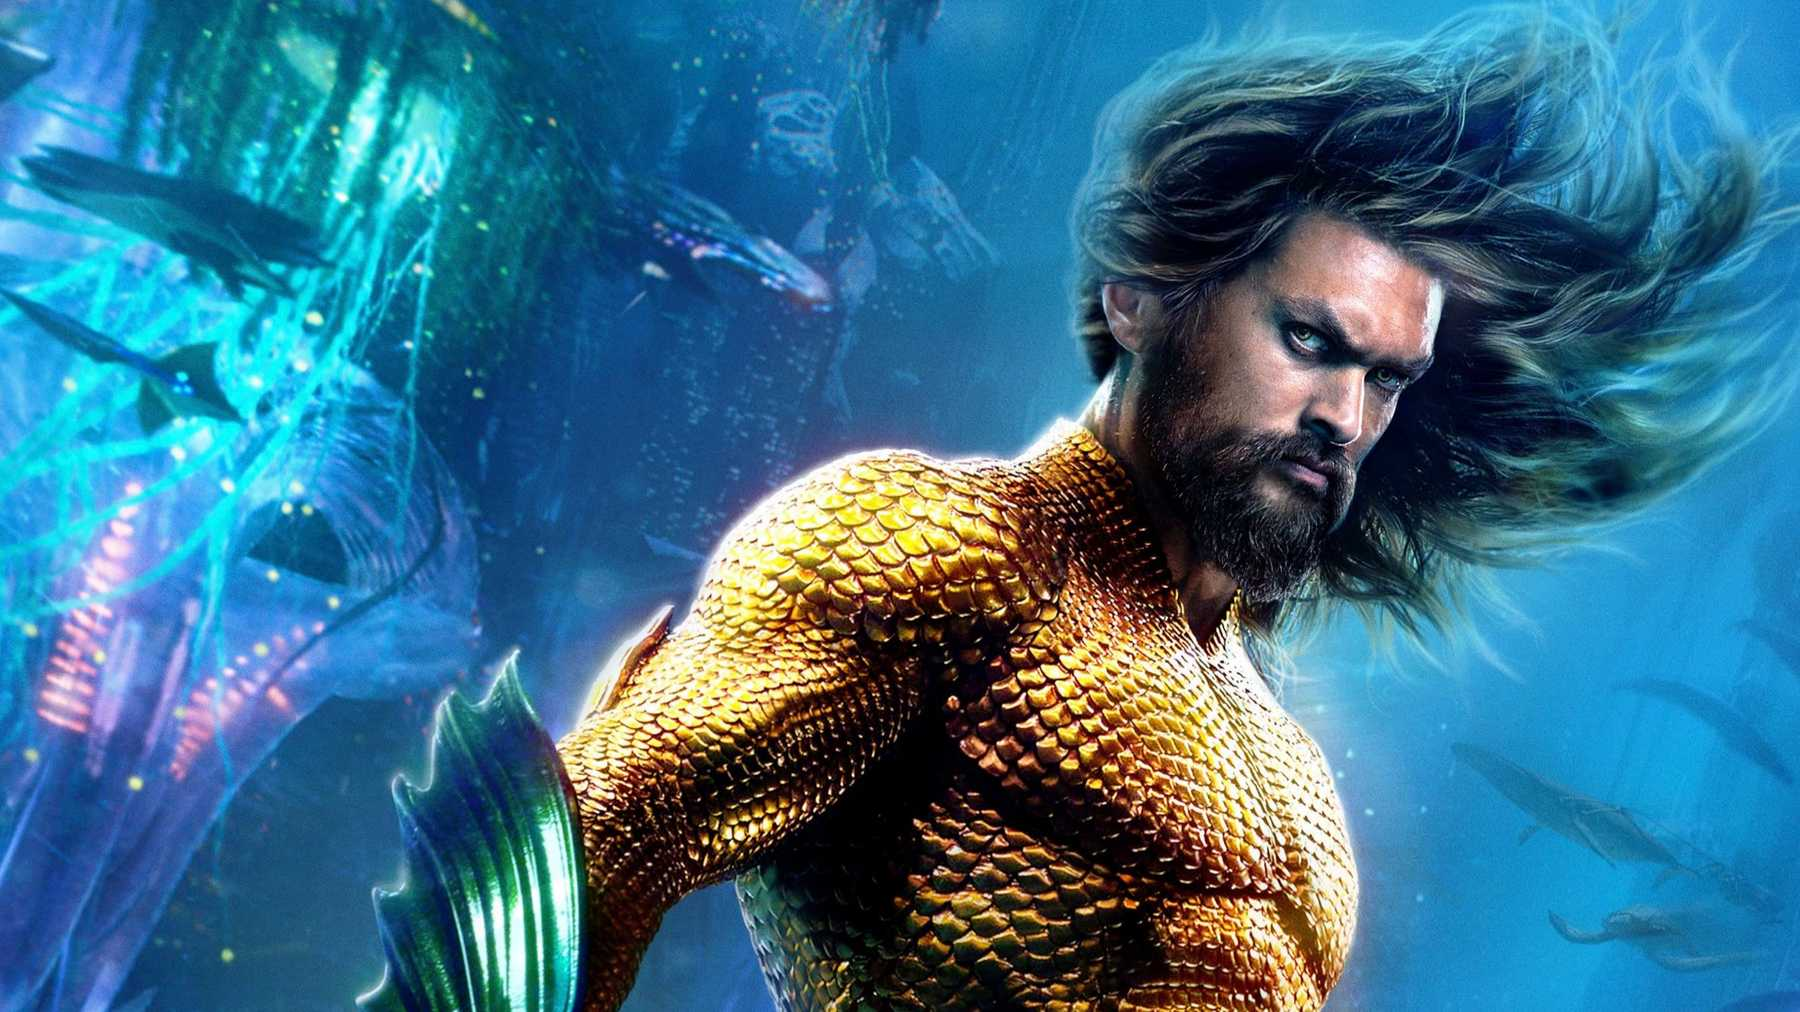 New Aquaman Character Posters Show Off Heroes And Villains ...